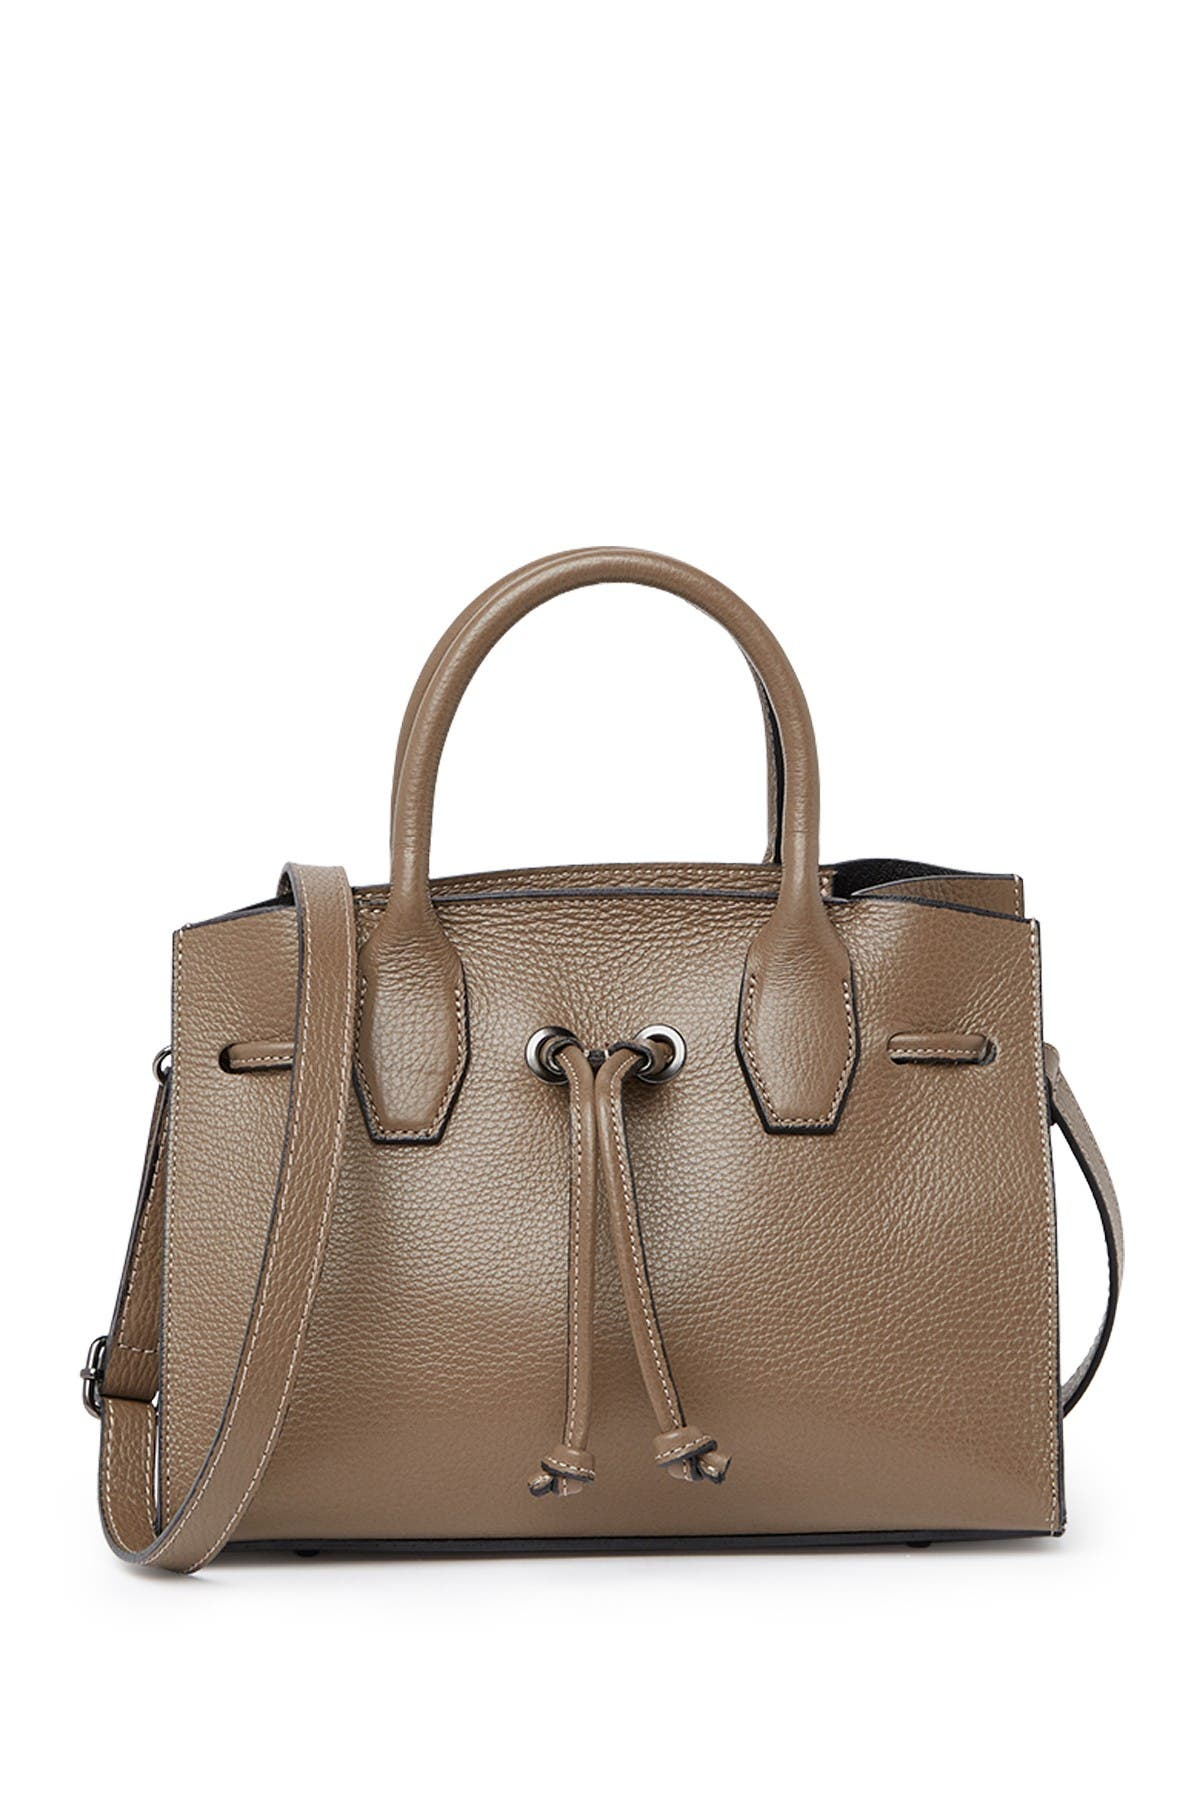 Image of Roberta M Leather Drawstring Satchel